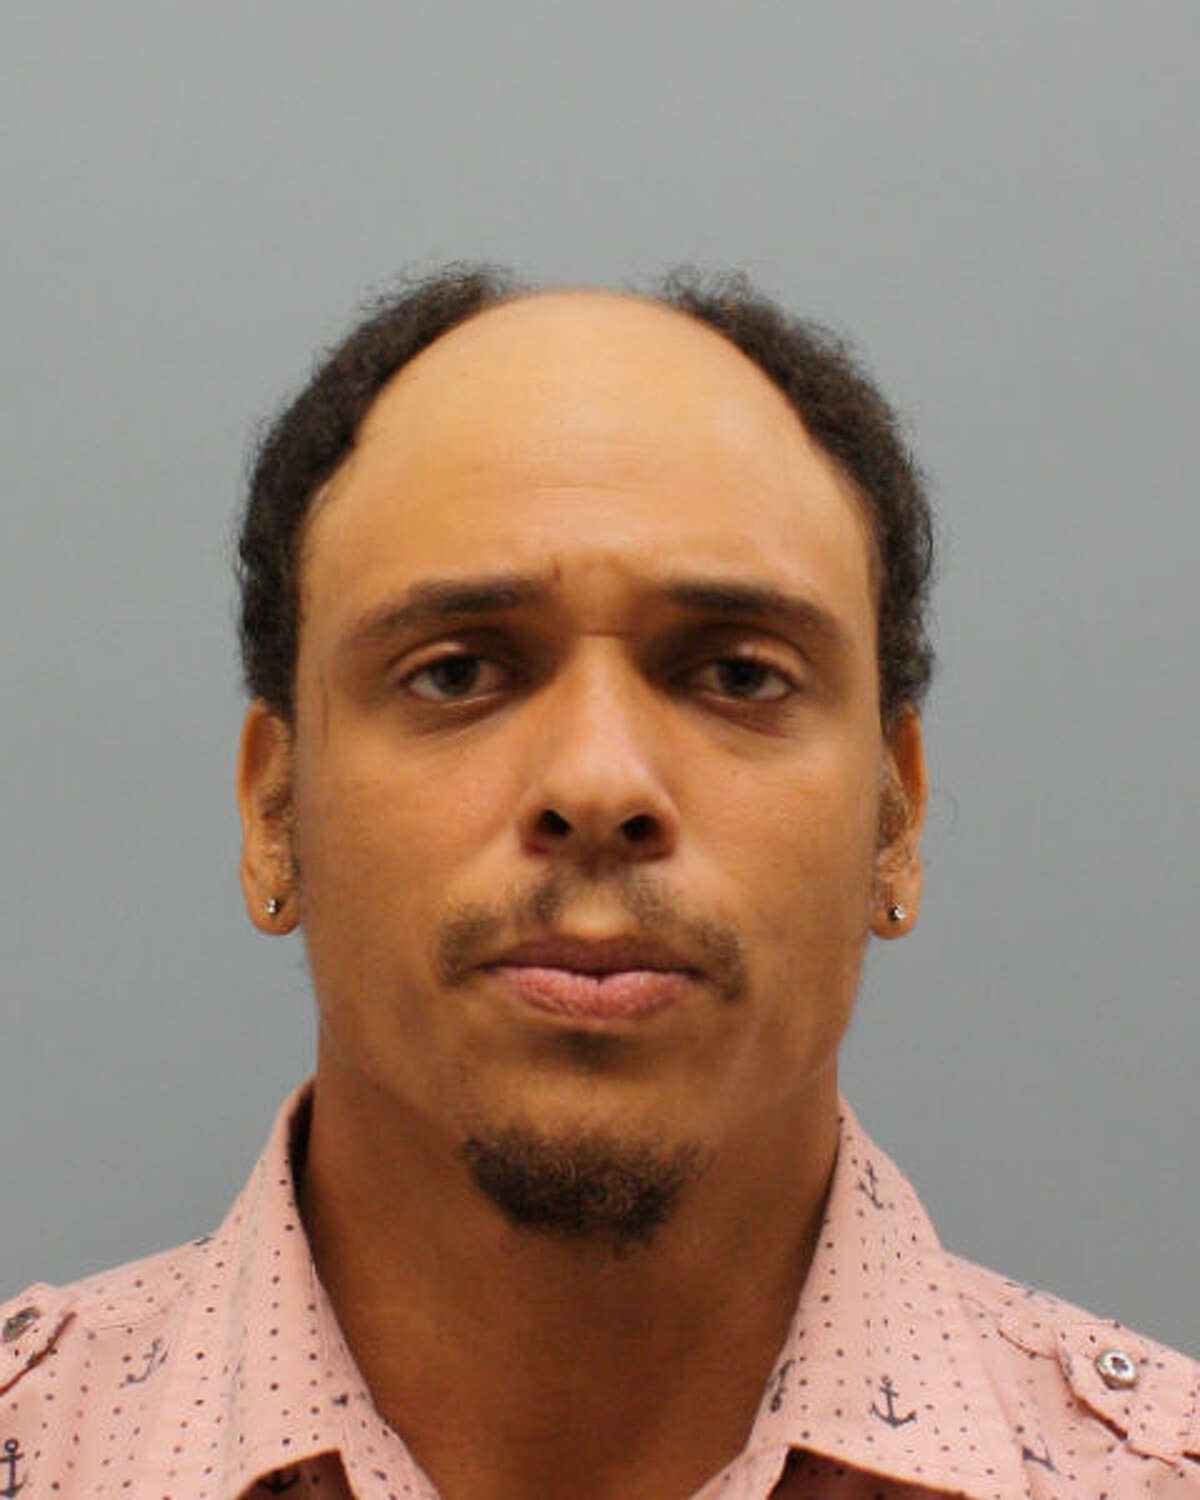 Andre Colson, 26, has been charged with murder in the death of Sierra Rhodd.